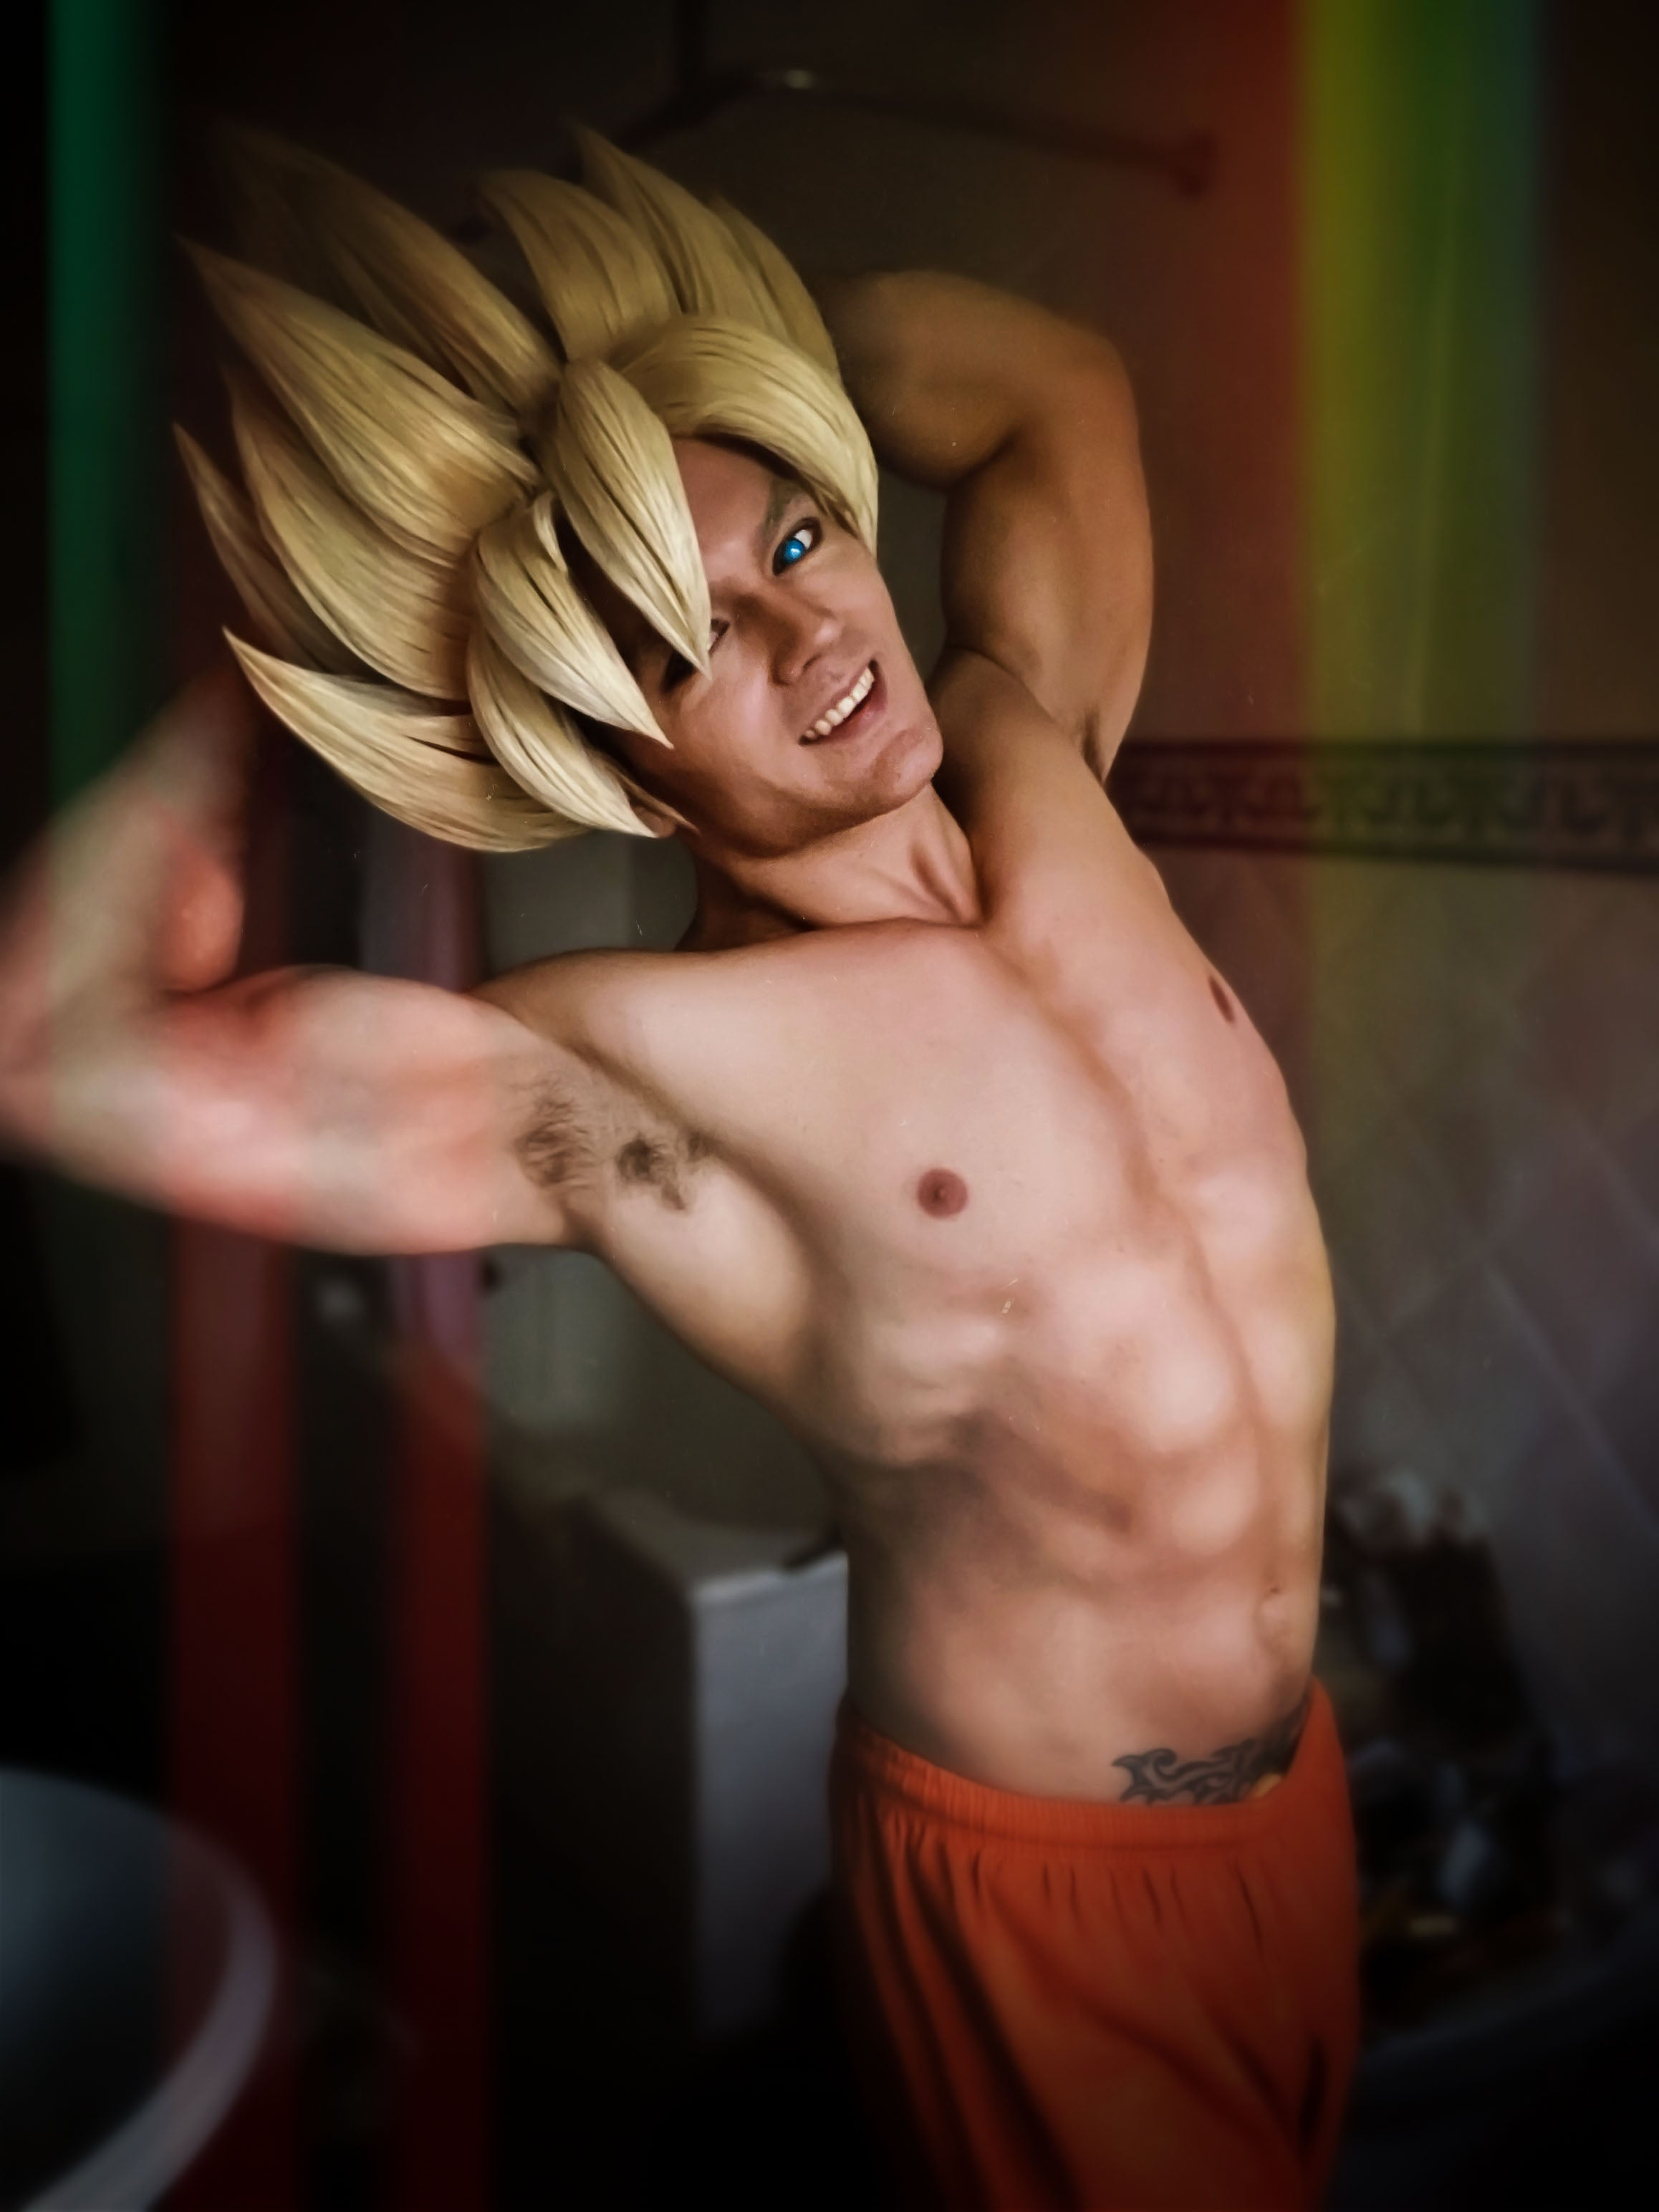 Super Saiyan Son Goku cosplay from DragonBall Z topless and flexing